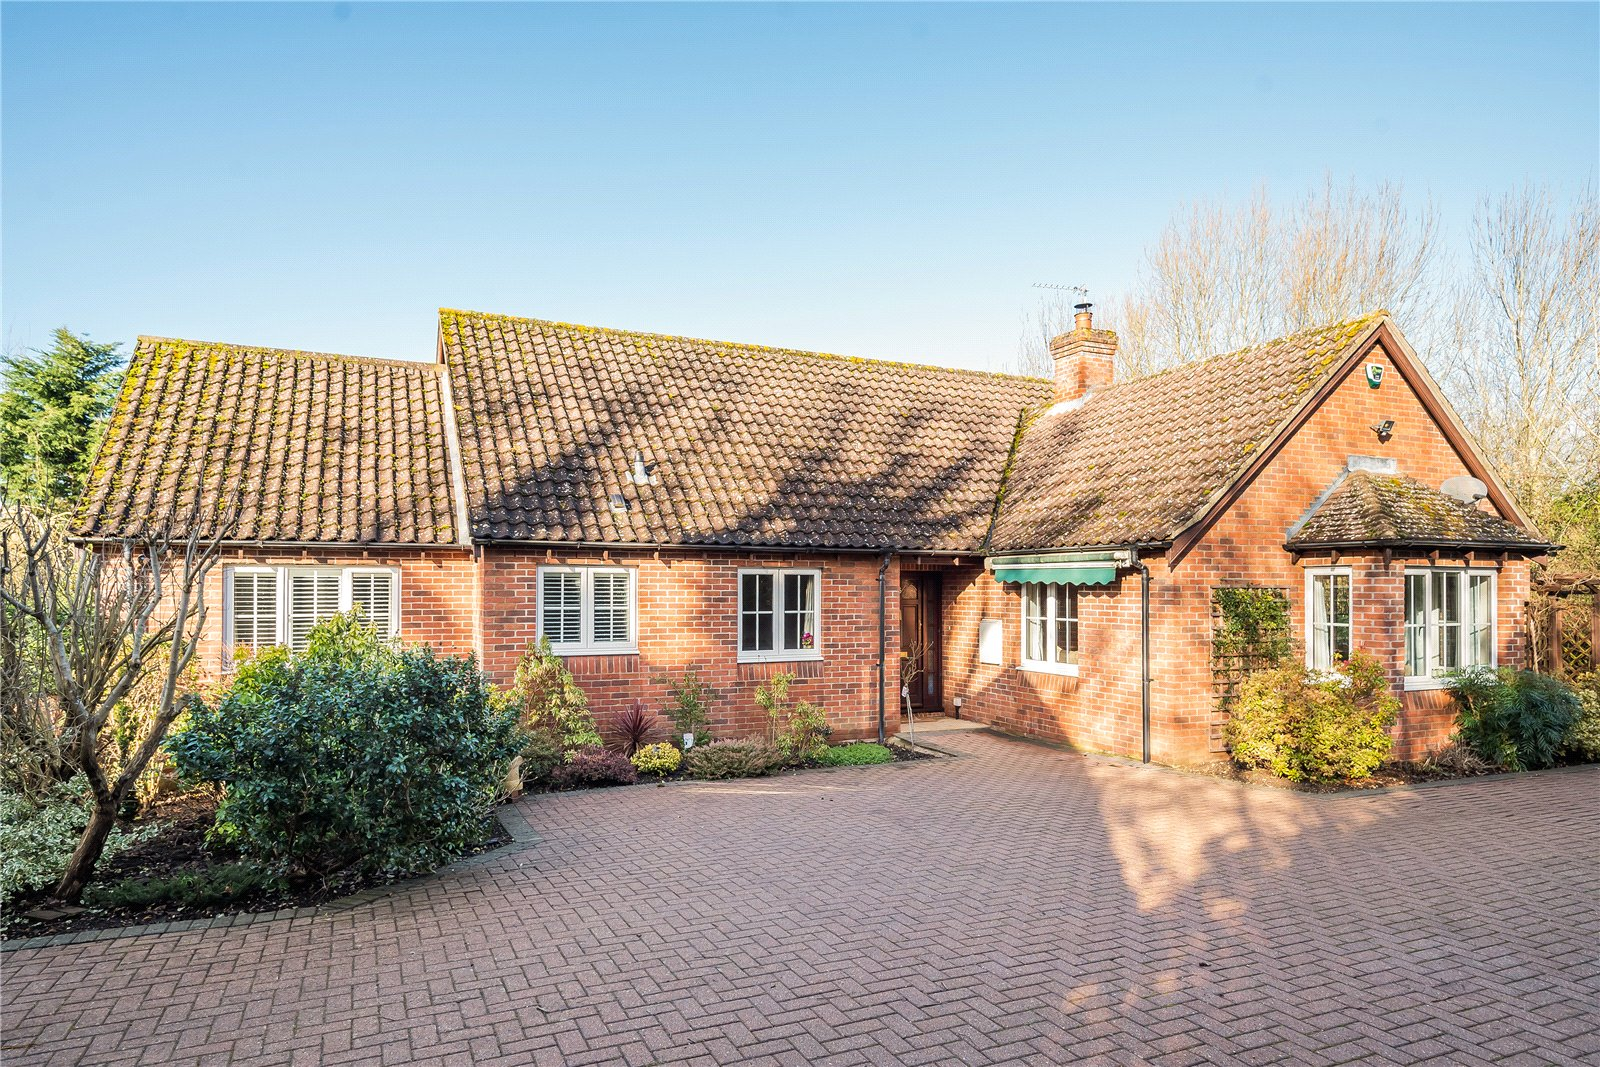 3 bed bungalow for sale in Great Gransden, SG19 3RA, SG19